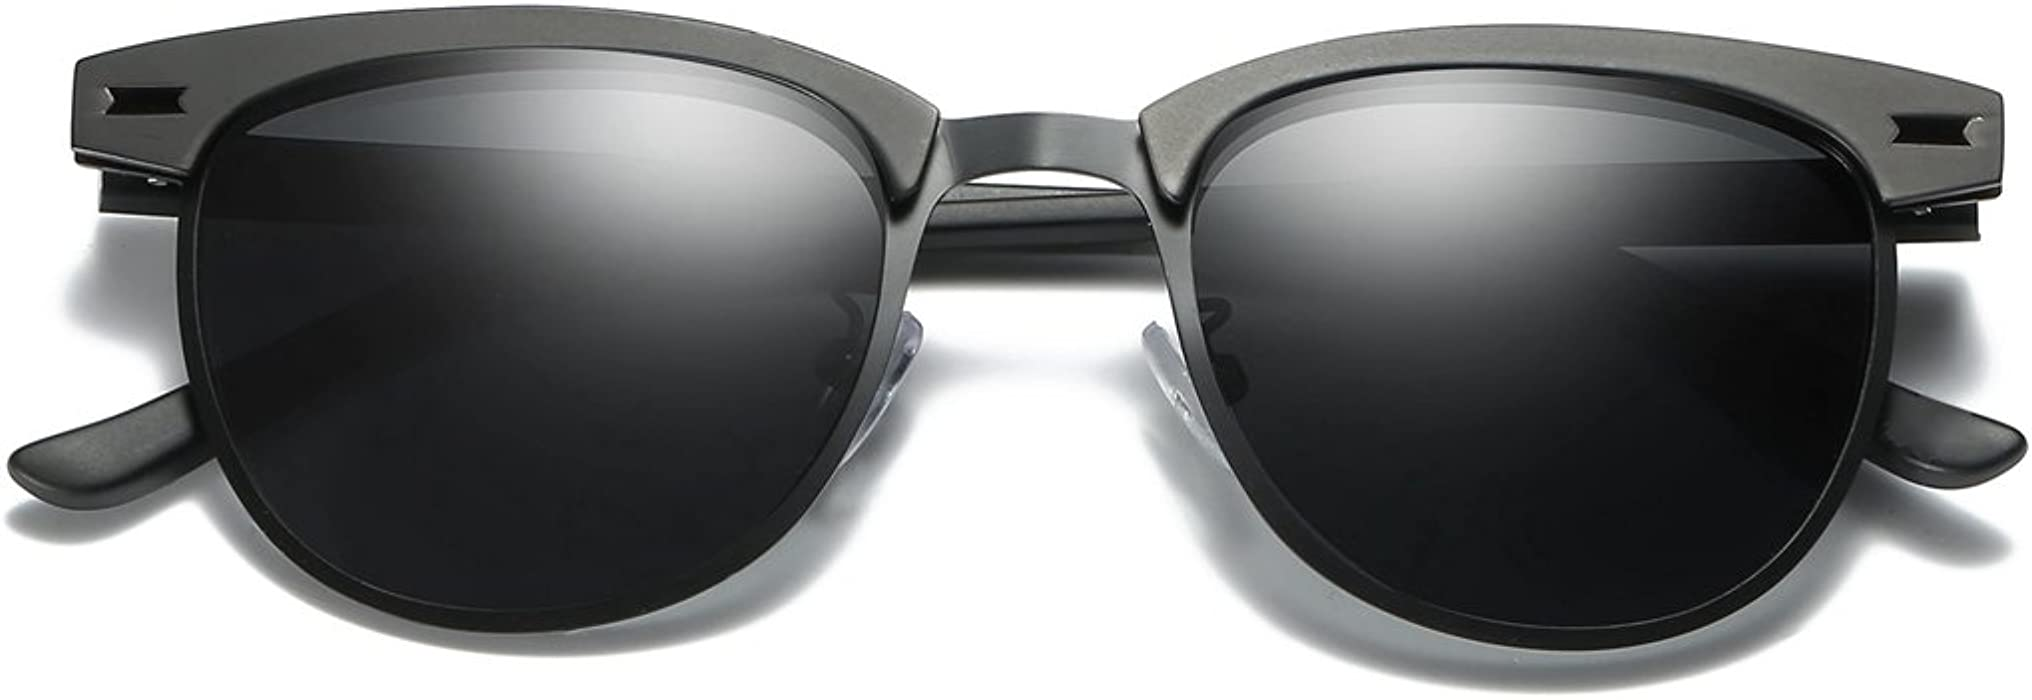 ccd38be3c4aaf LUOMON Polarized Clubmaster Sunglasses with 48mm Semi Rimless Lens LM017